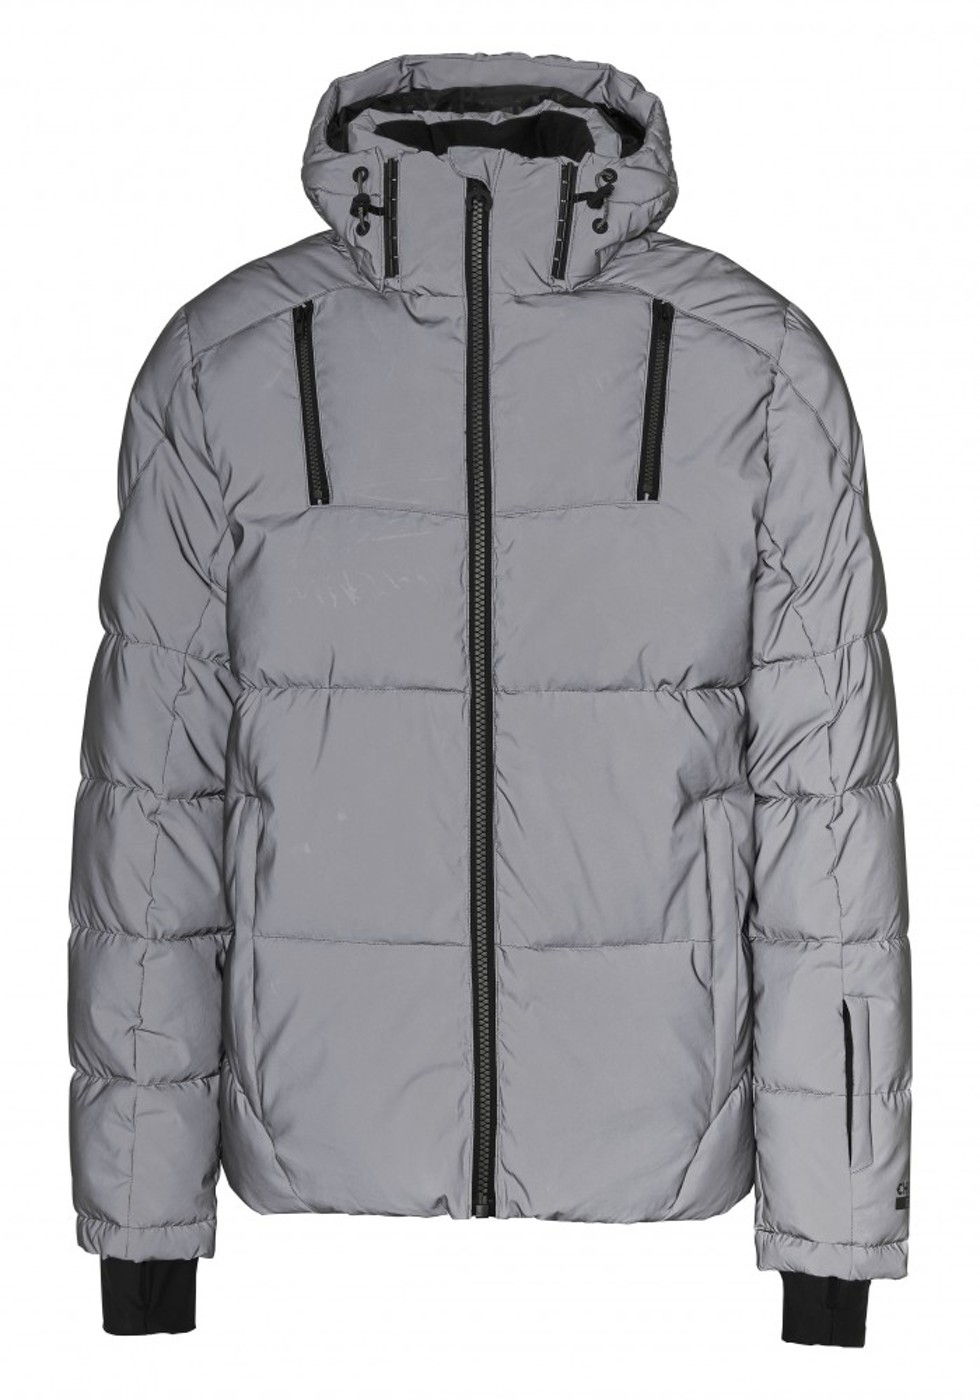 CHIEMSEE ANGEL SAR Ski Jacket - Herren